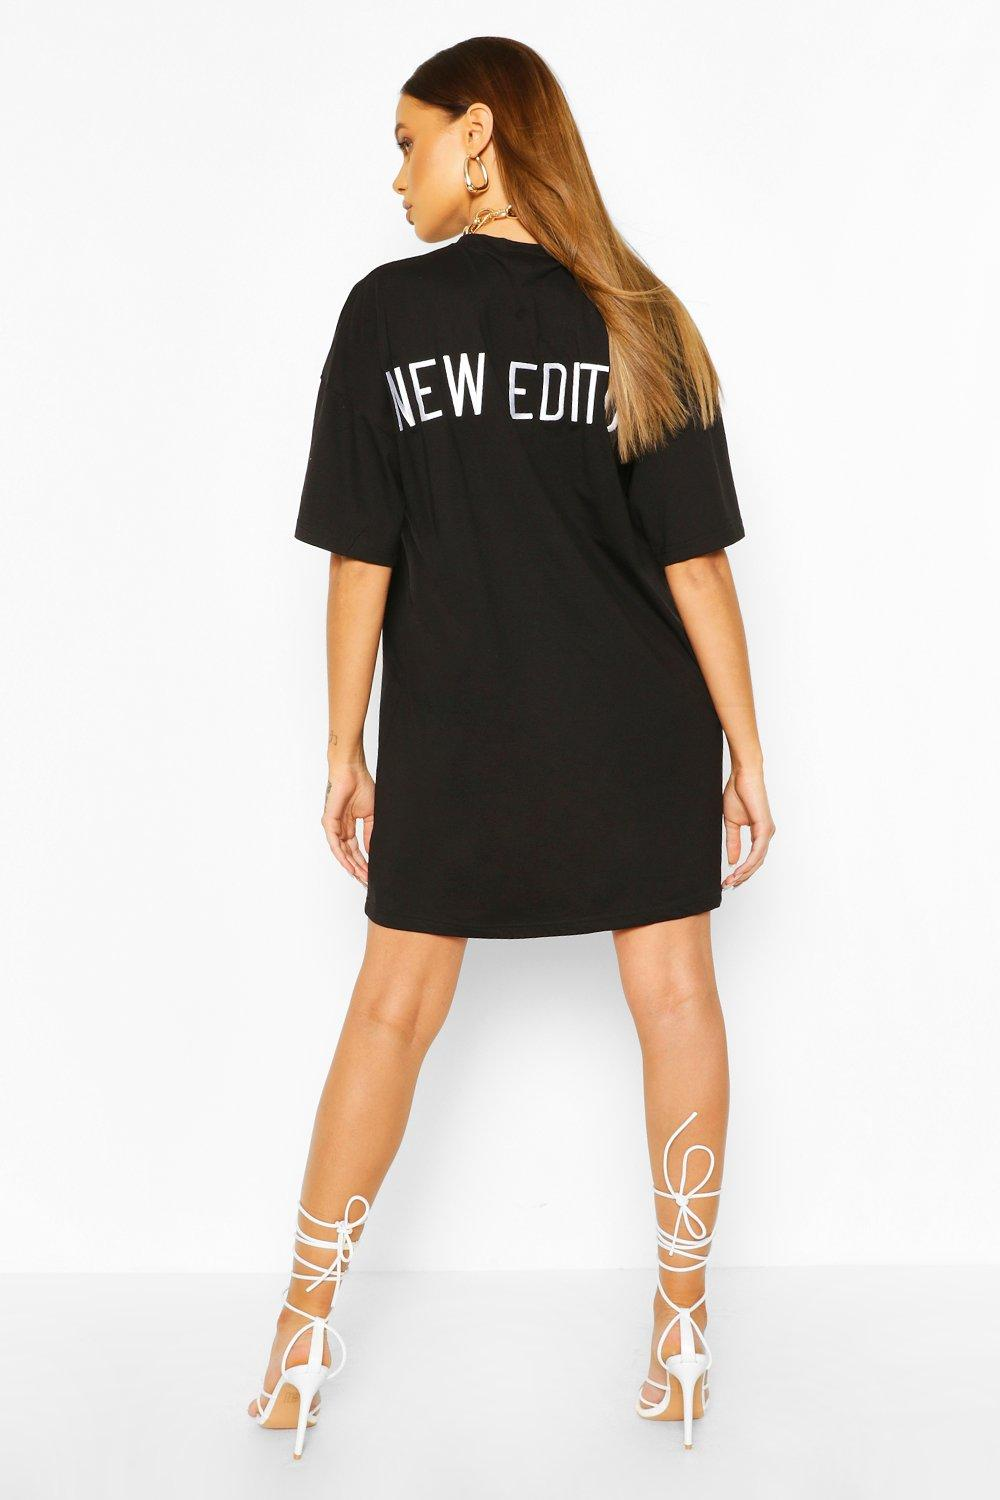 boohoo Womens Embroidered Back Slogan Oversized T-Shirt Dress - Black - 12, Black